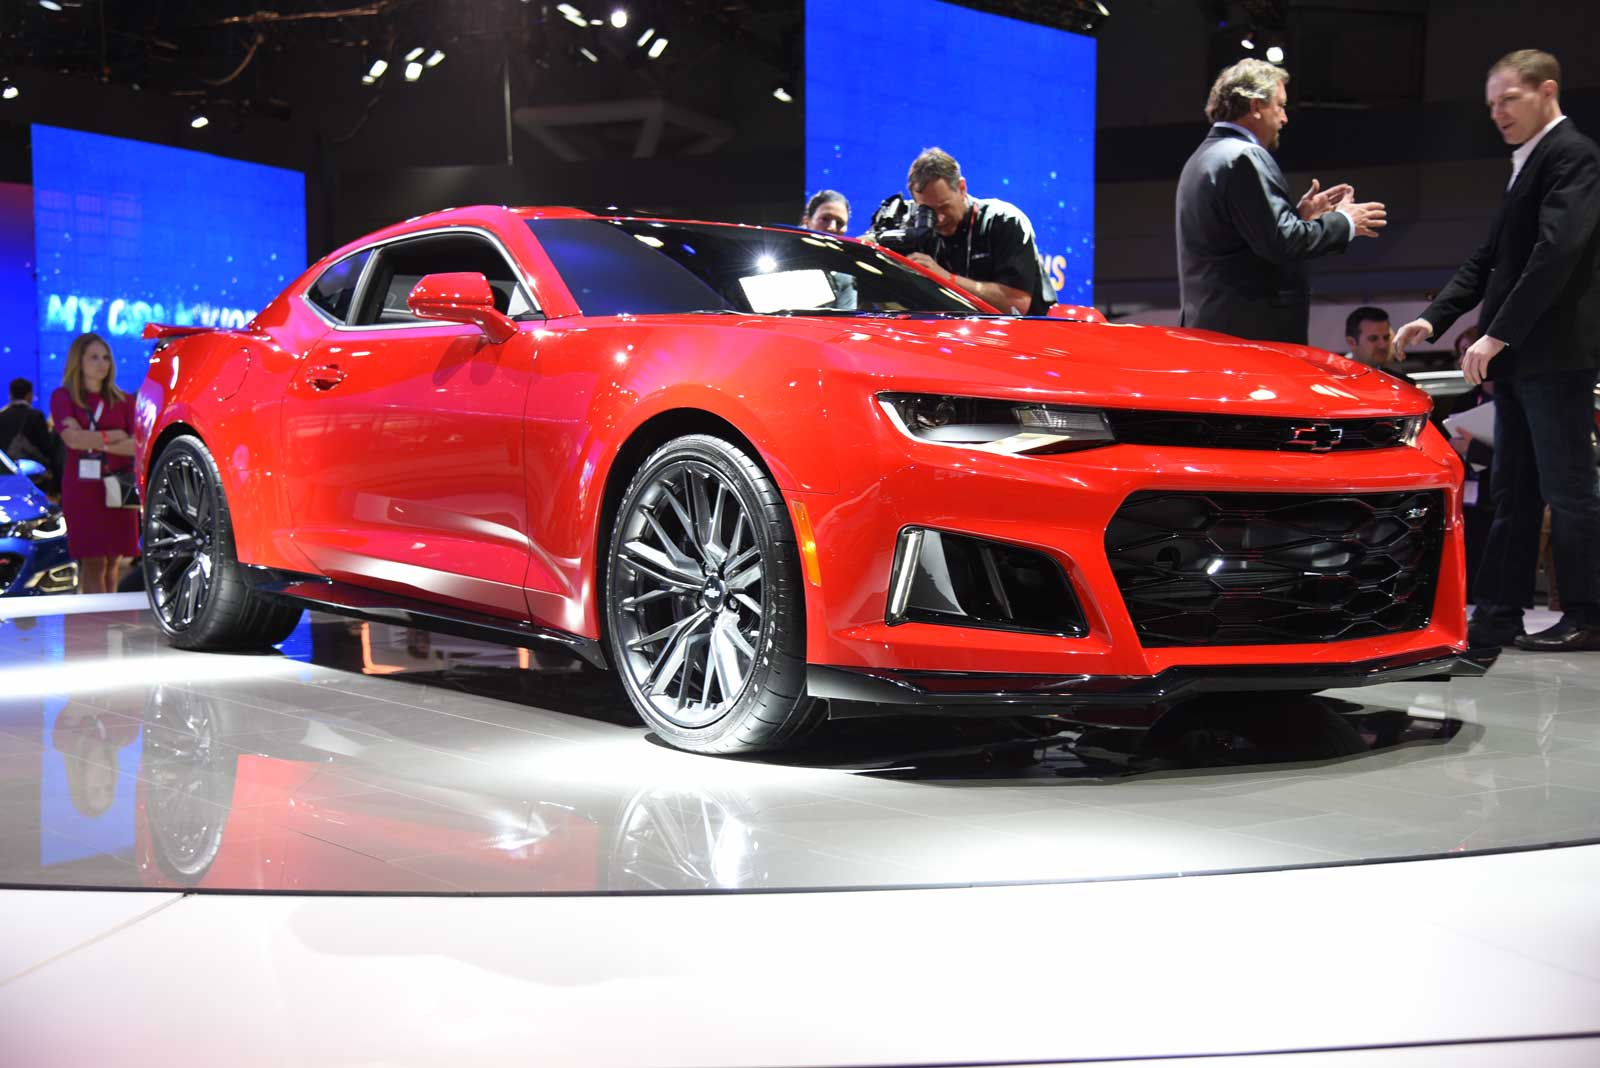 2017 chevy camaro zl1 arrives with 640 hp sent through 10 gears news. Black Bedroom Furniture Sets. Home Design Ideas